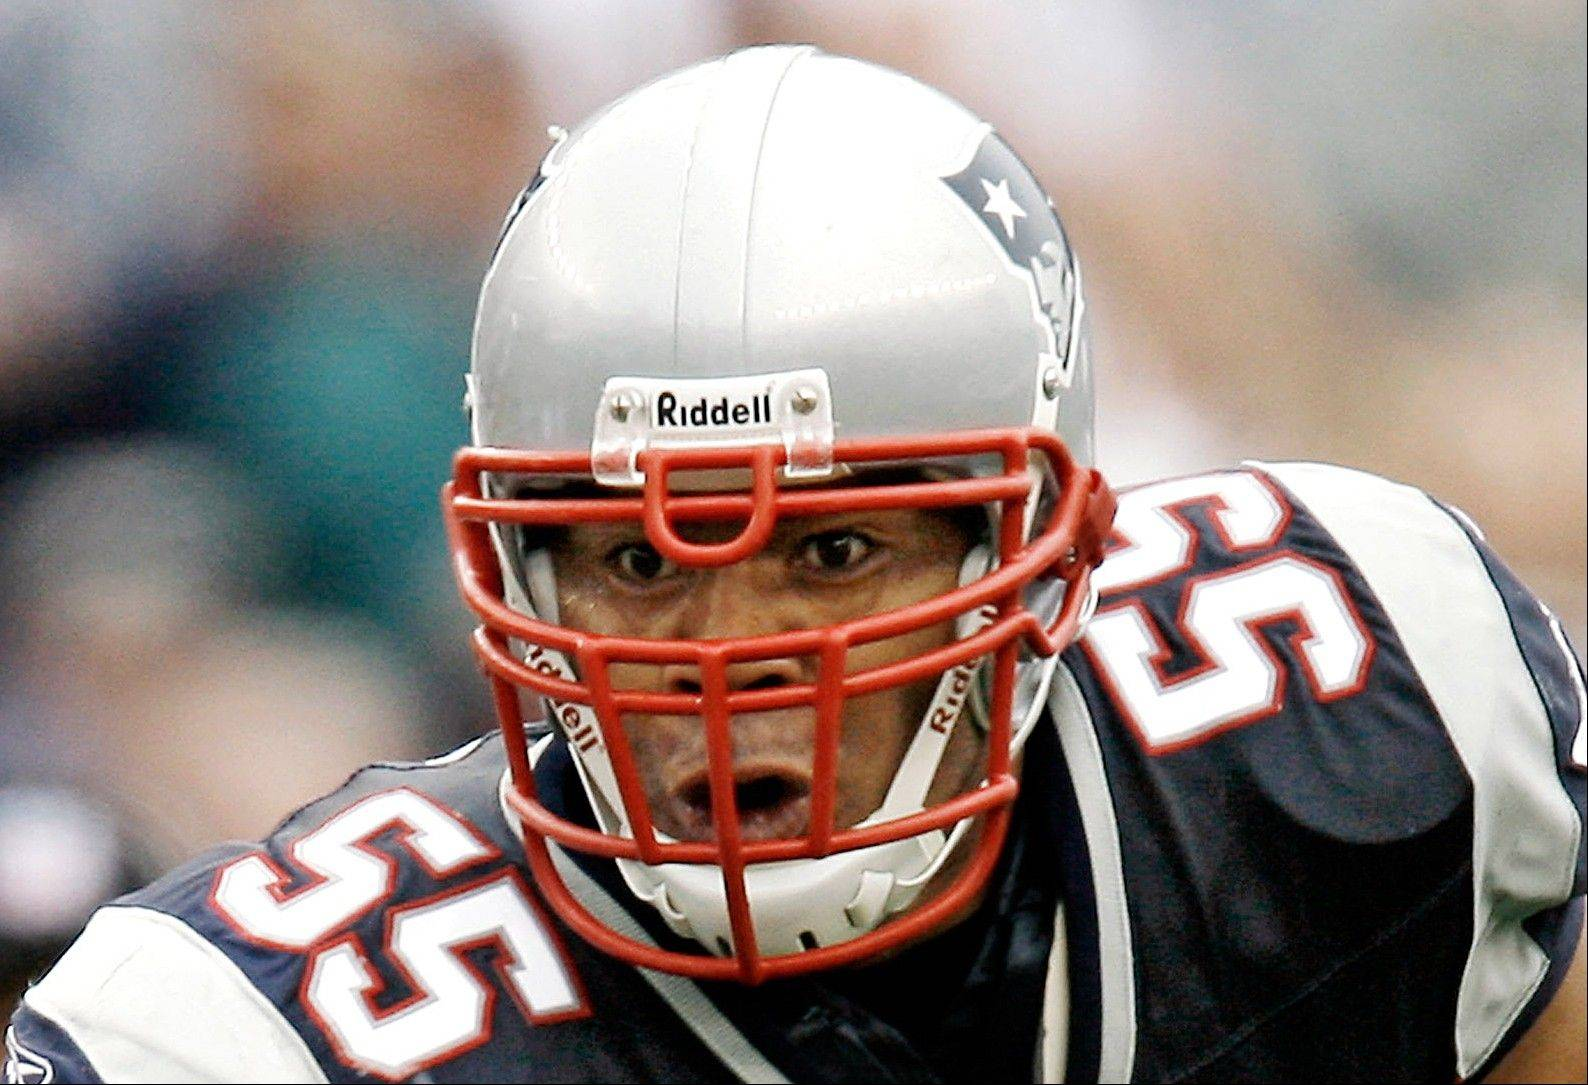 The family of Junior Seau has sued the NFL, claiming the former linebacker's suicide was the result of brain disease caused by violent hits he sustained while playing football.